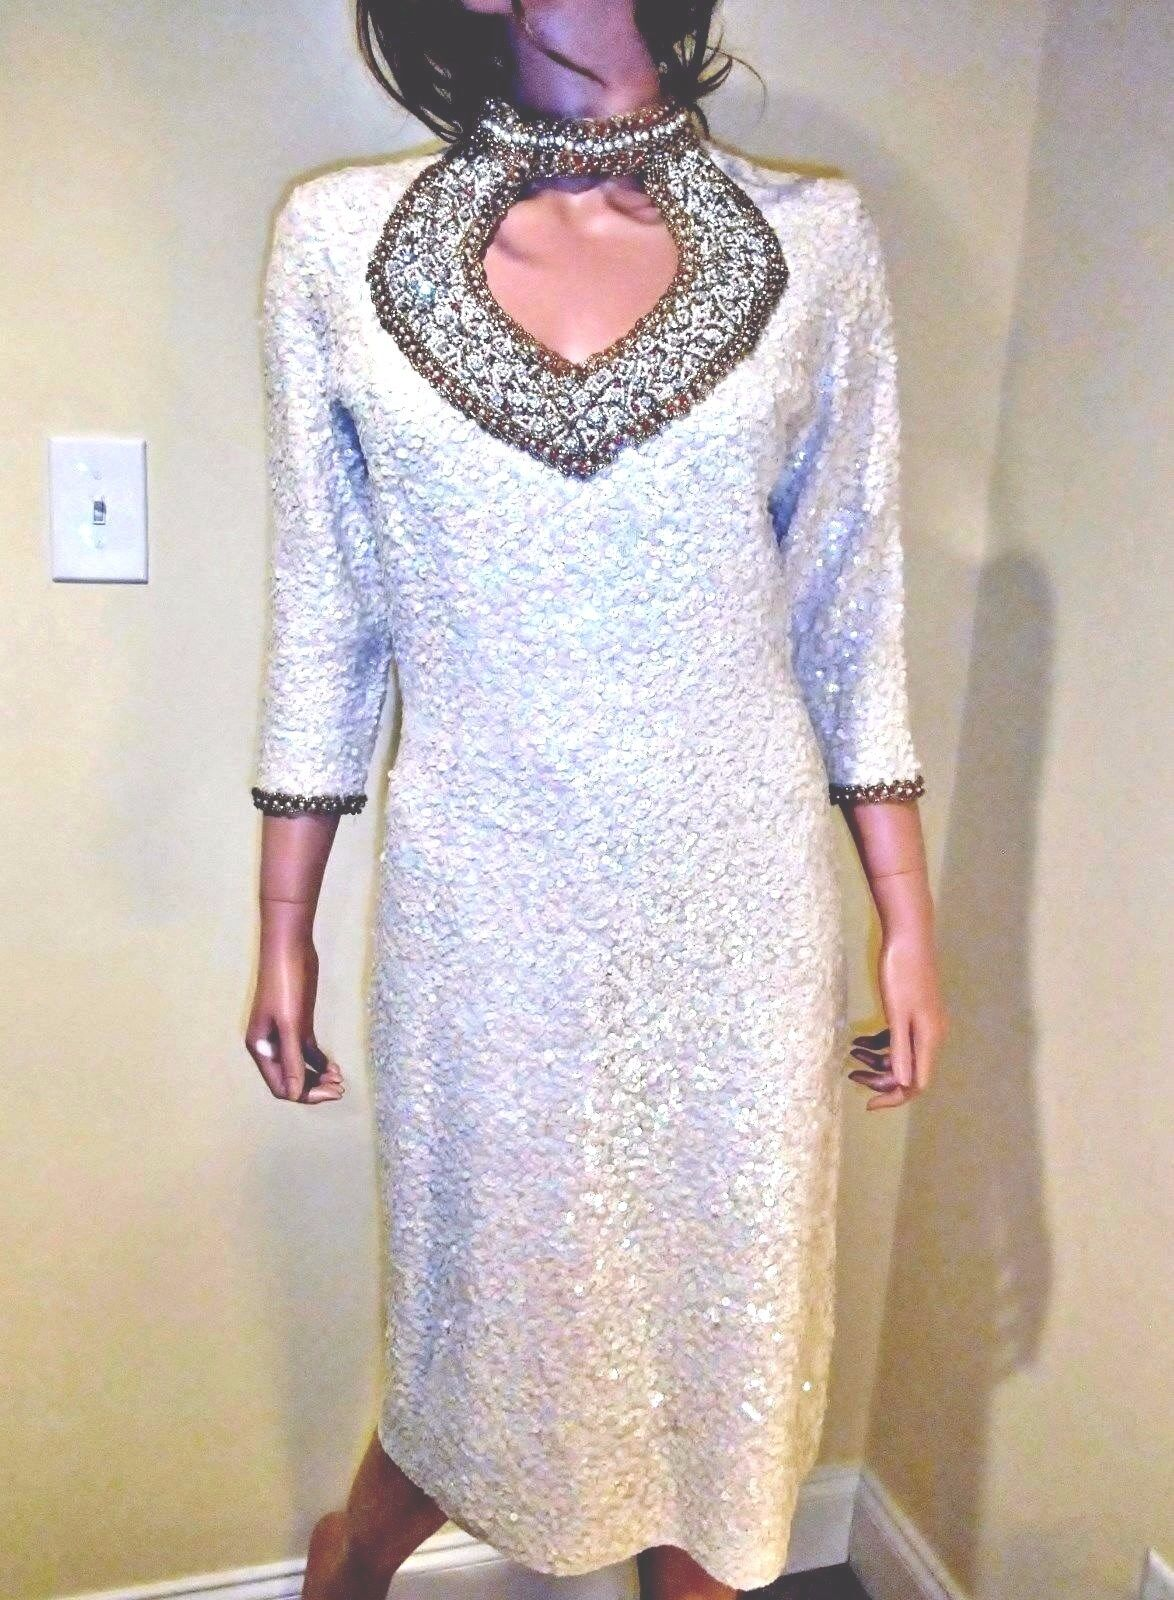 Vintage Gene Shelly's Boutique Internationale Runway Couture Sequin Dress S M